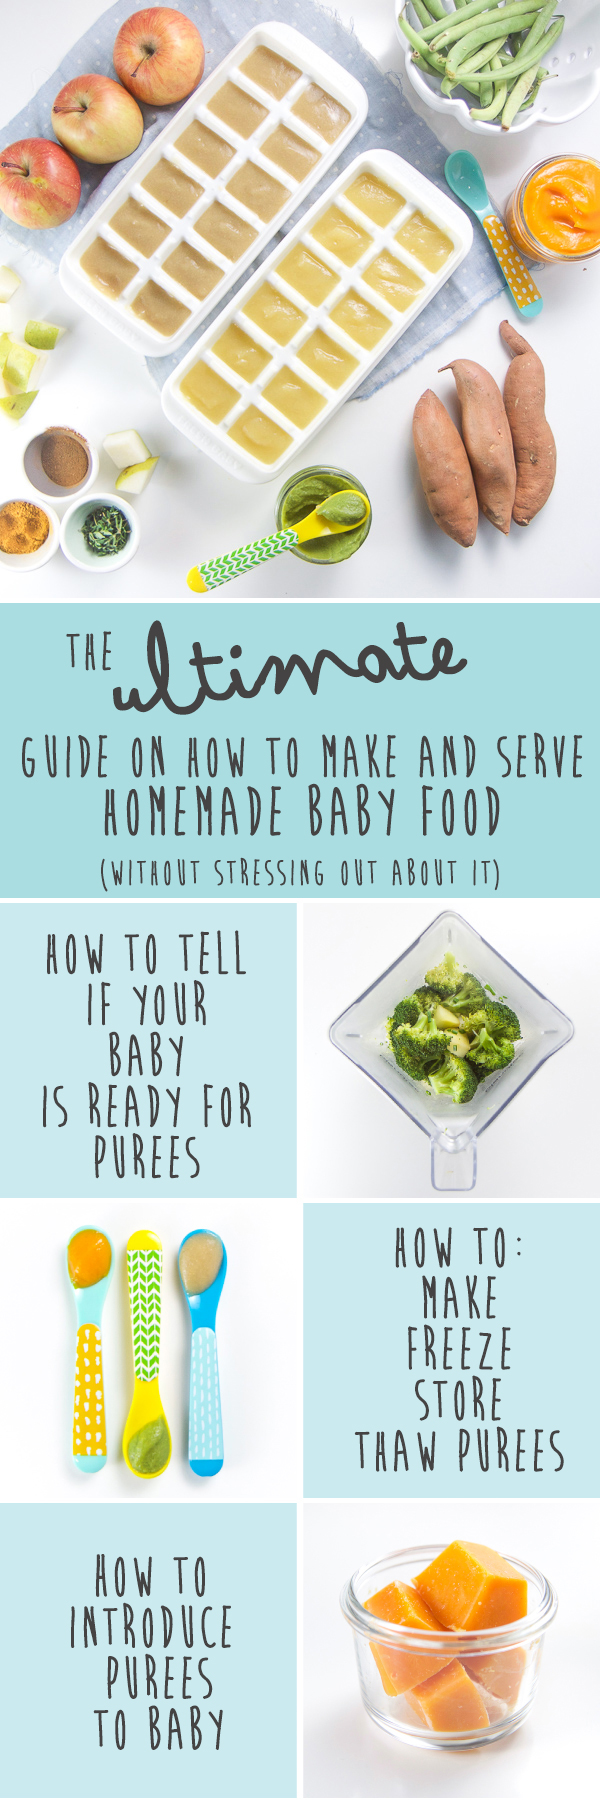 The Ultimate Guide on How to Make and Serve Homemade Baby Food